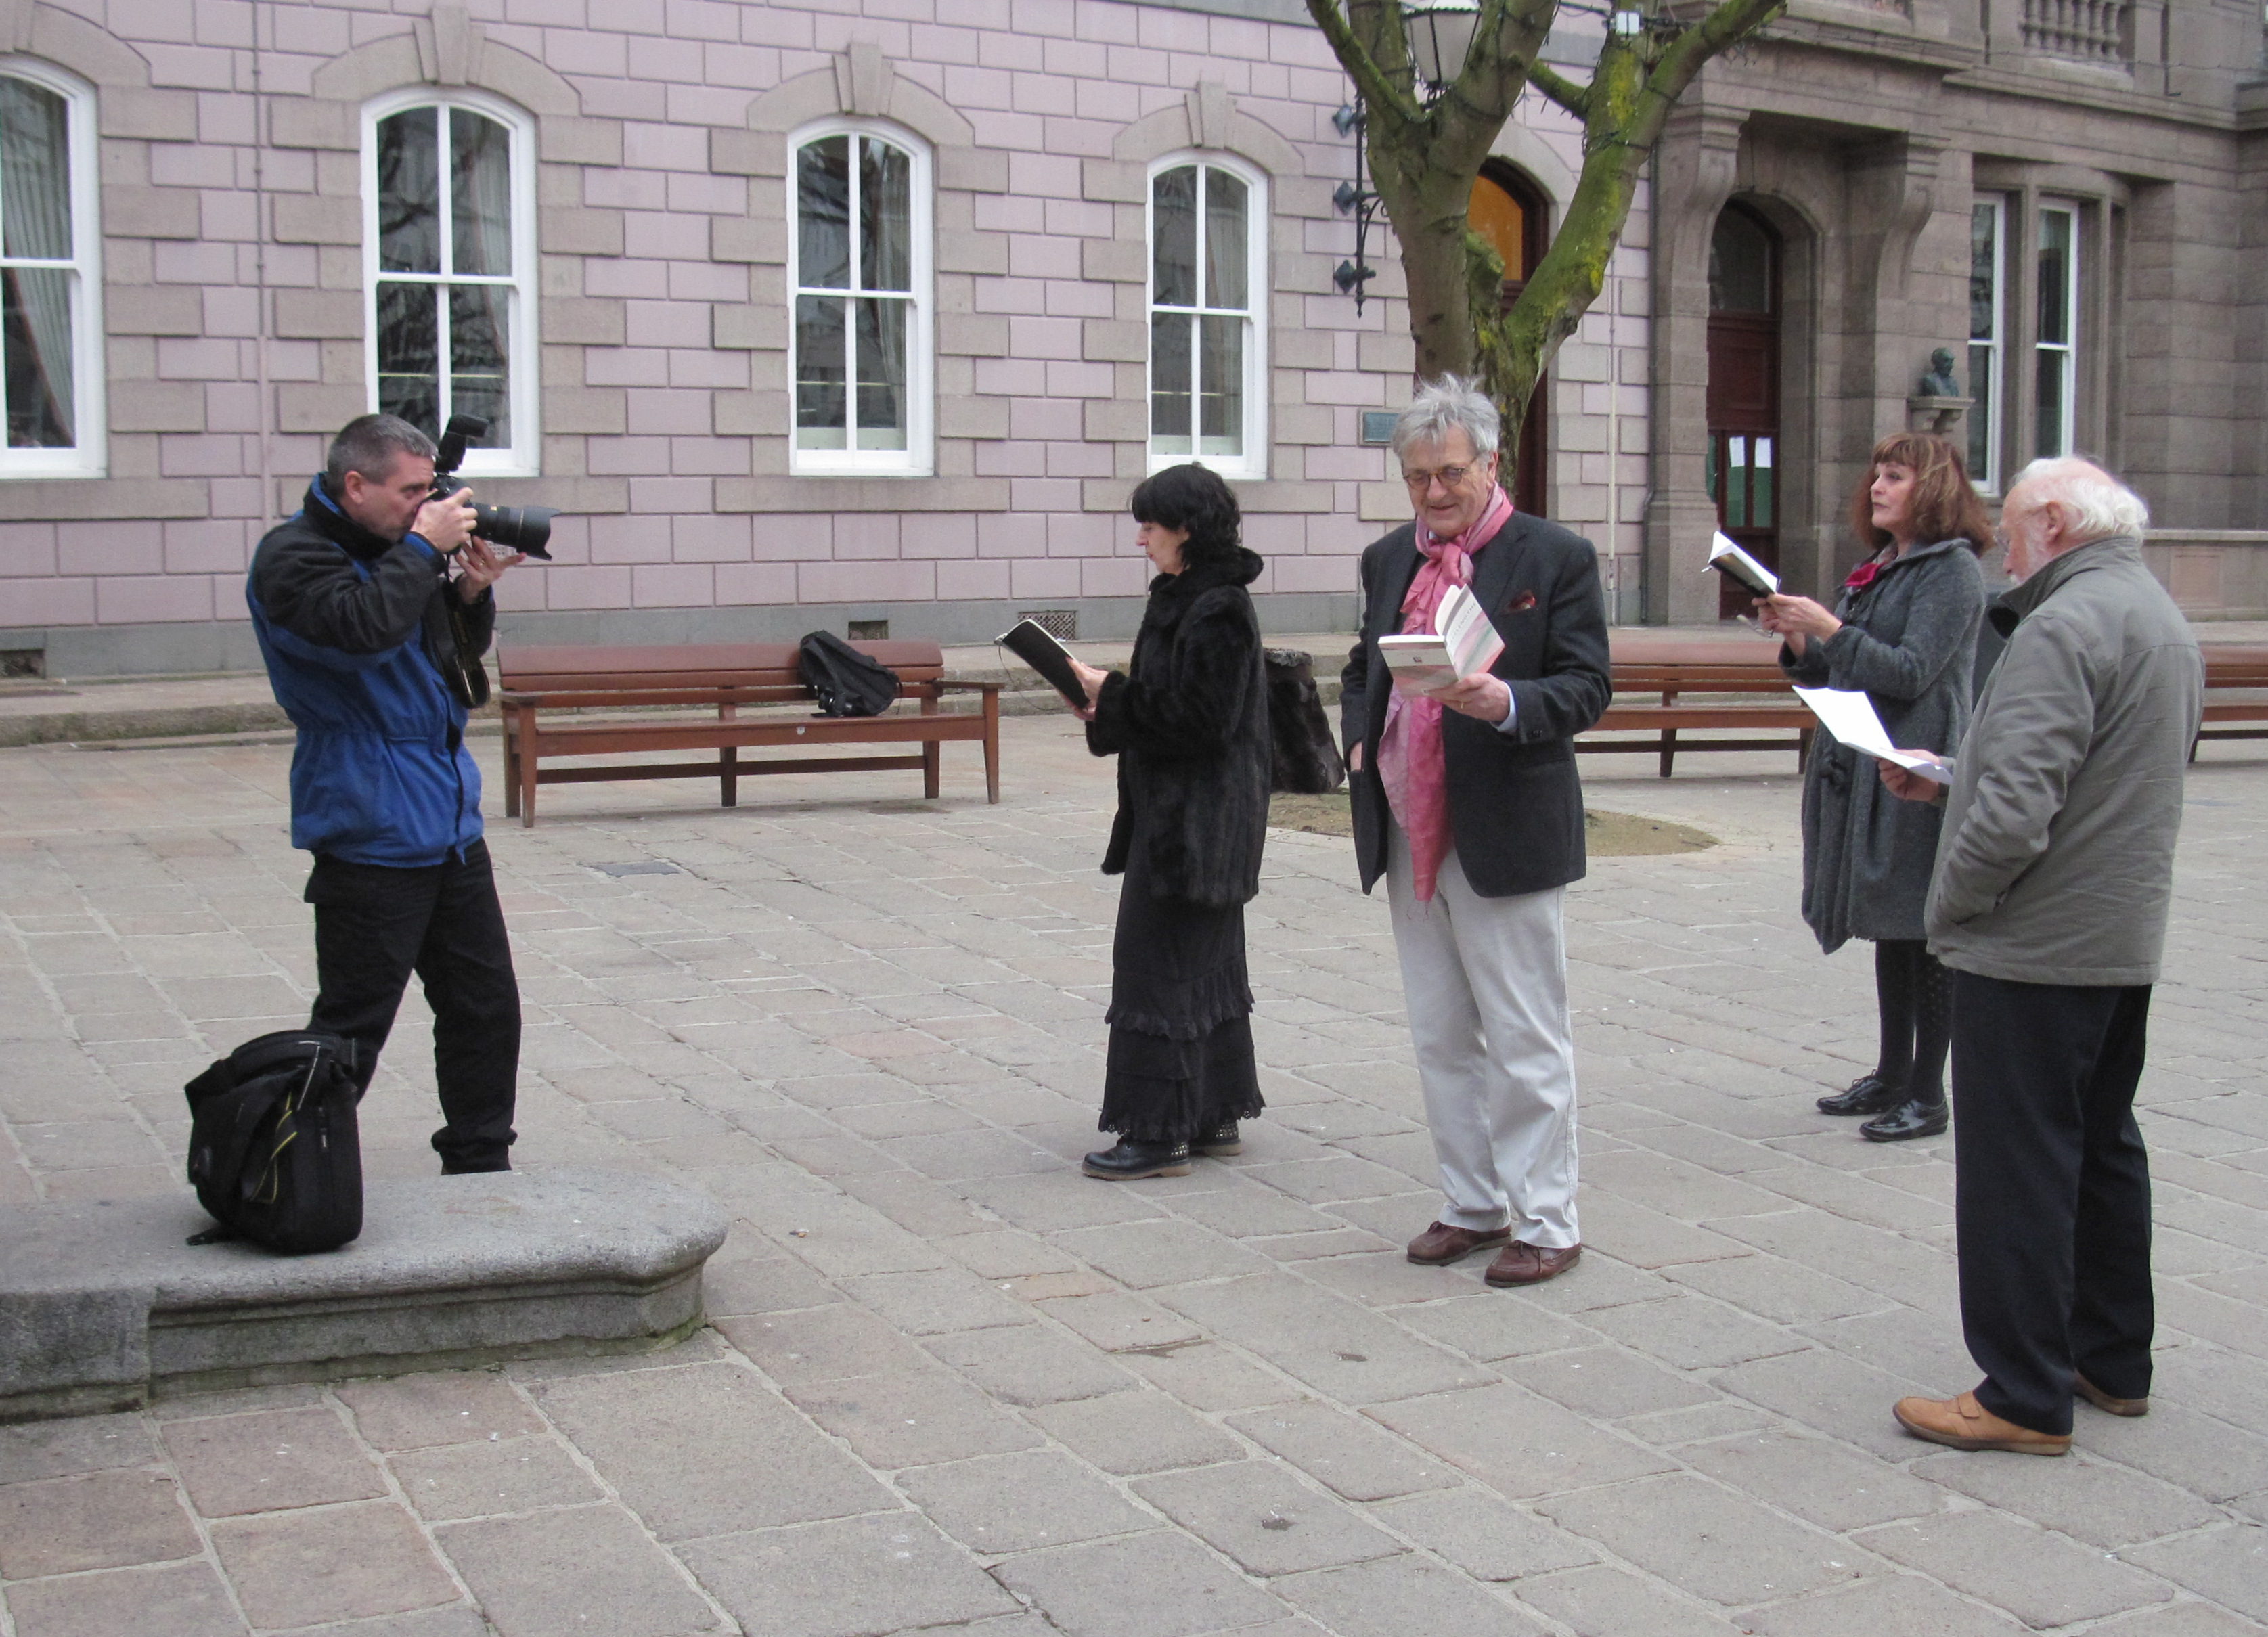 Http Commons Wikimedia Org Wiki File Poetry In Public Places Saint Helier Jersey 2013 5 Jpg